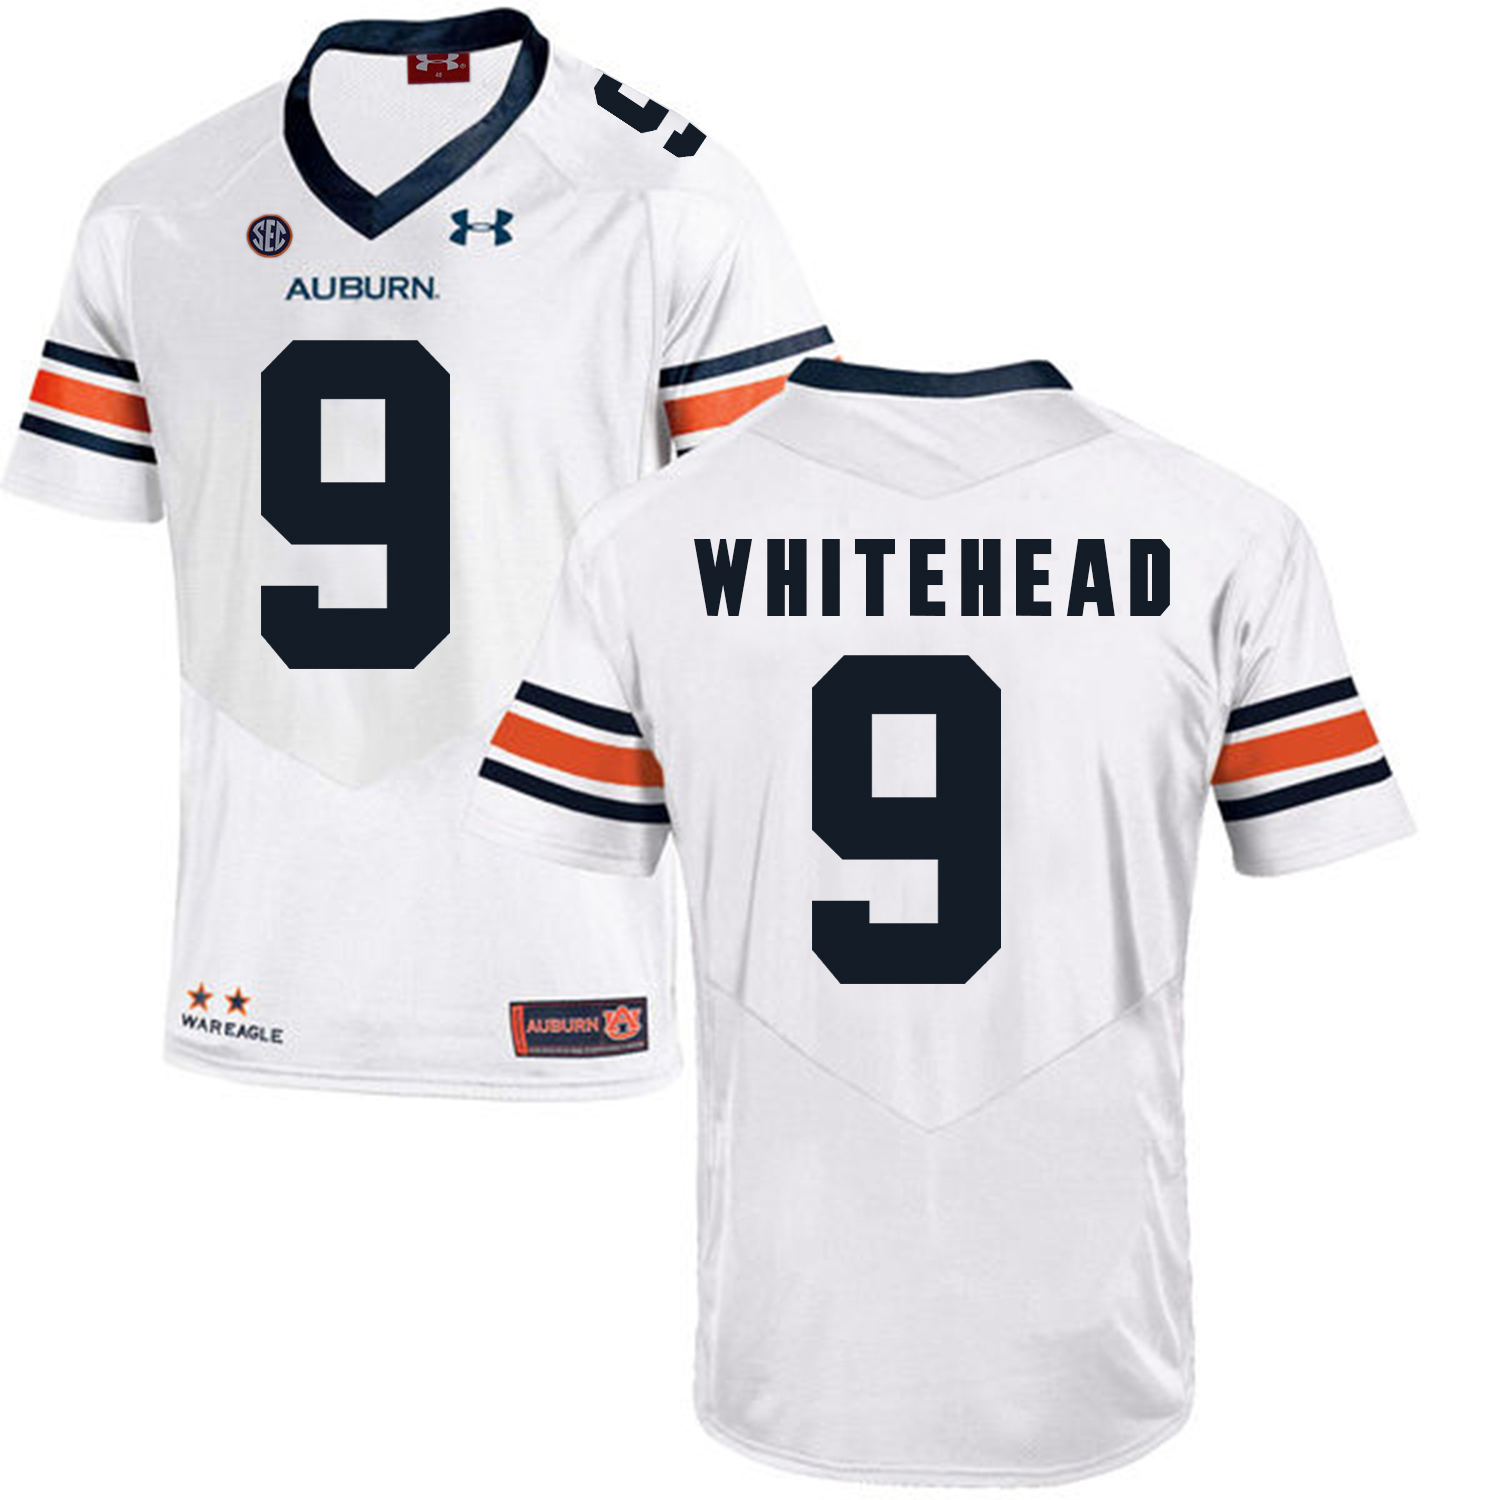 Auburn Tigers 9 Jermaine Whitehead White College Football Jersey